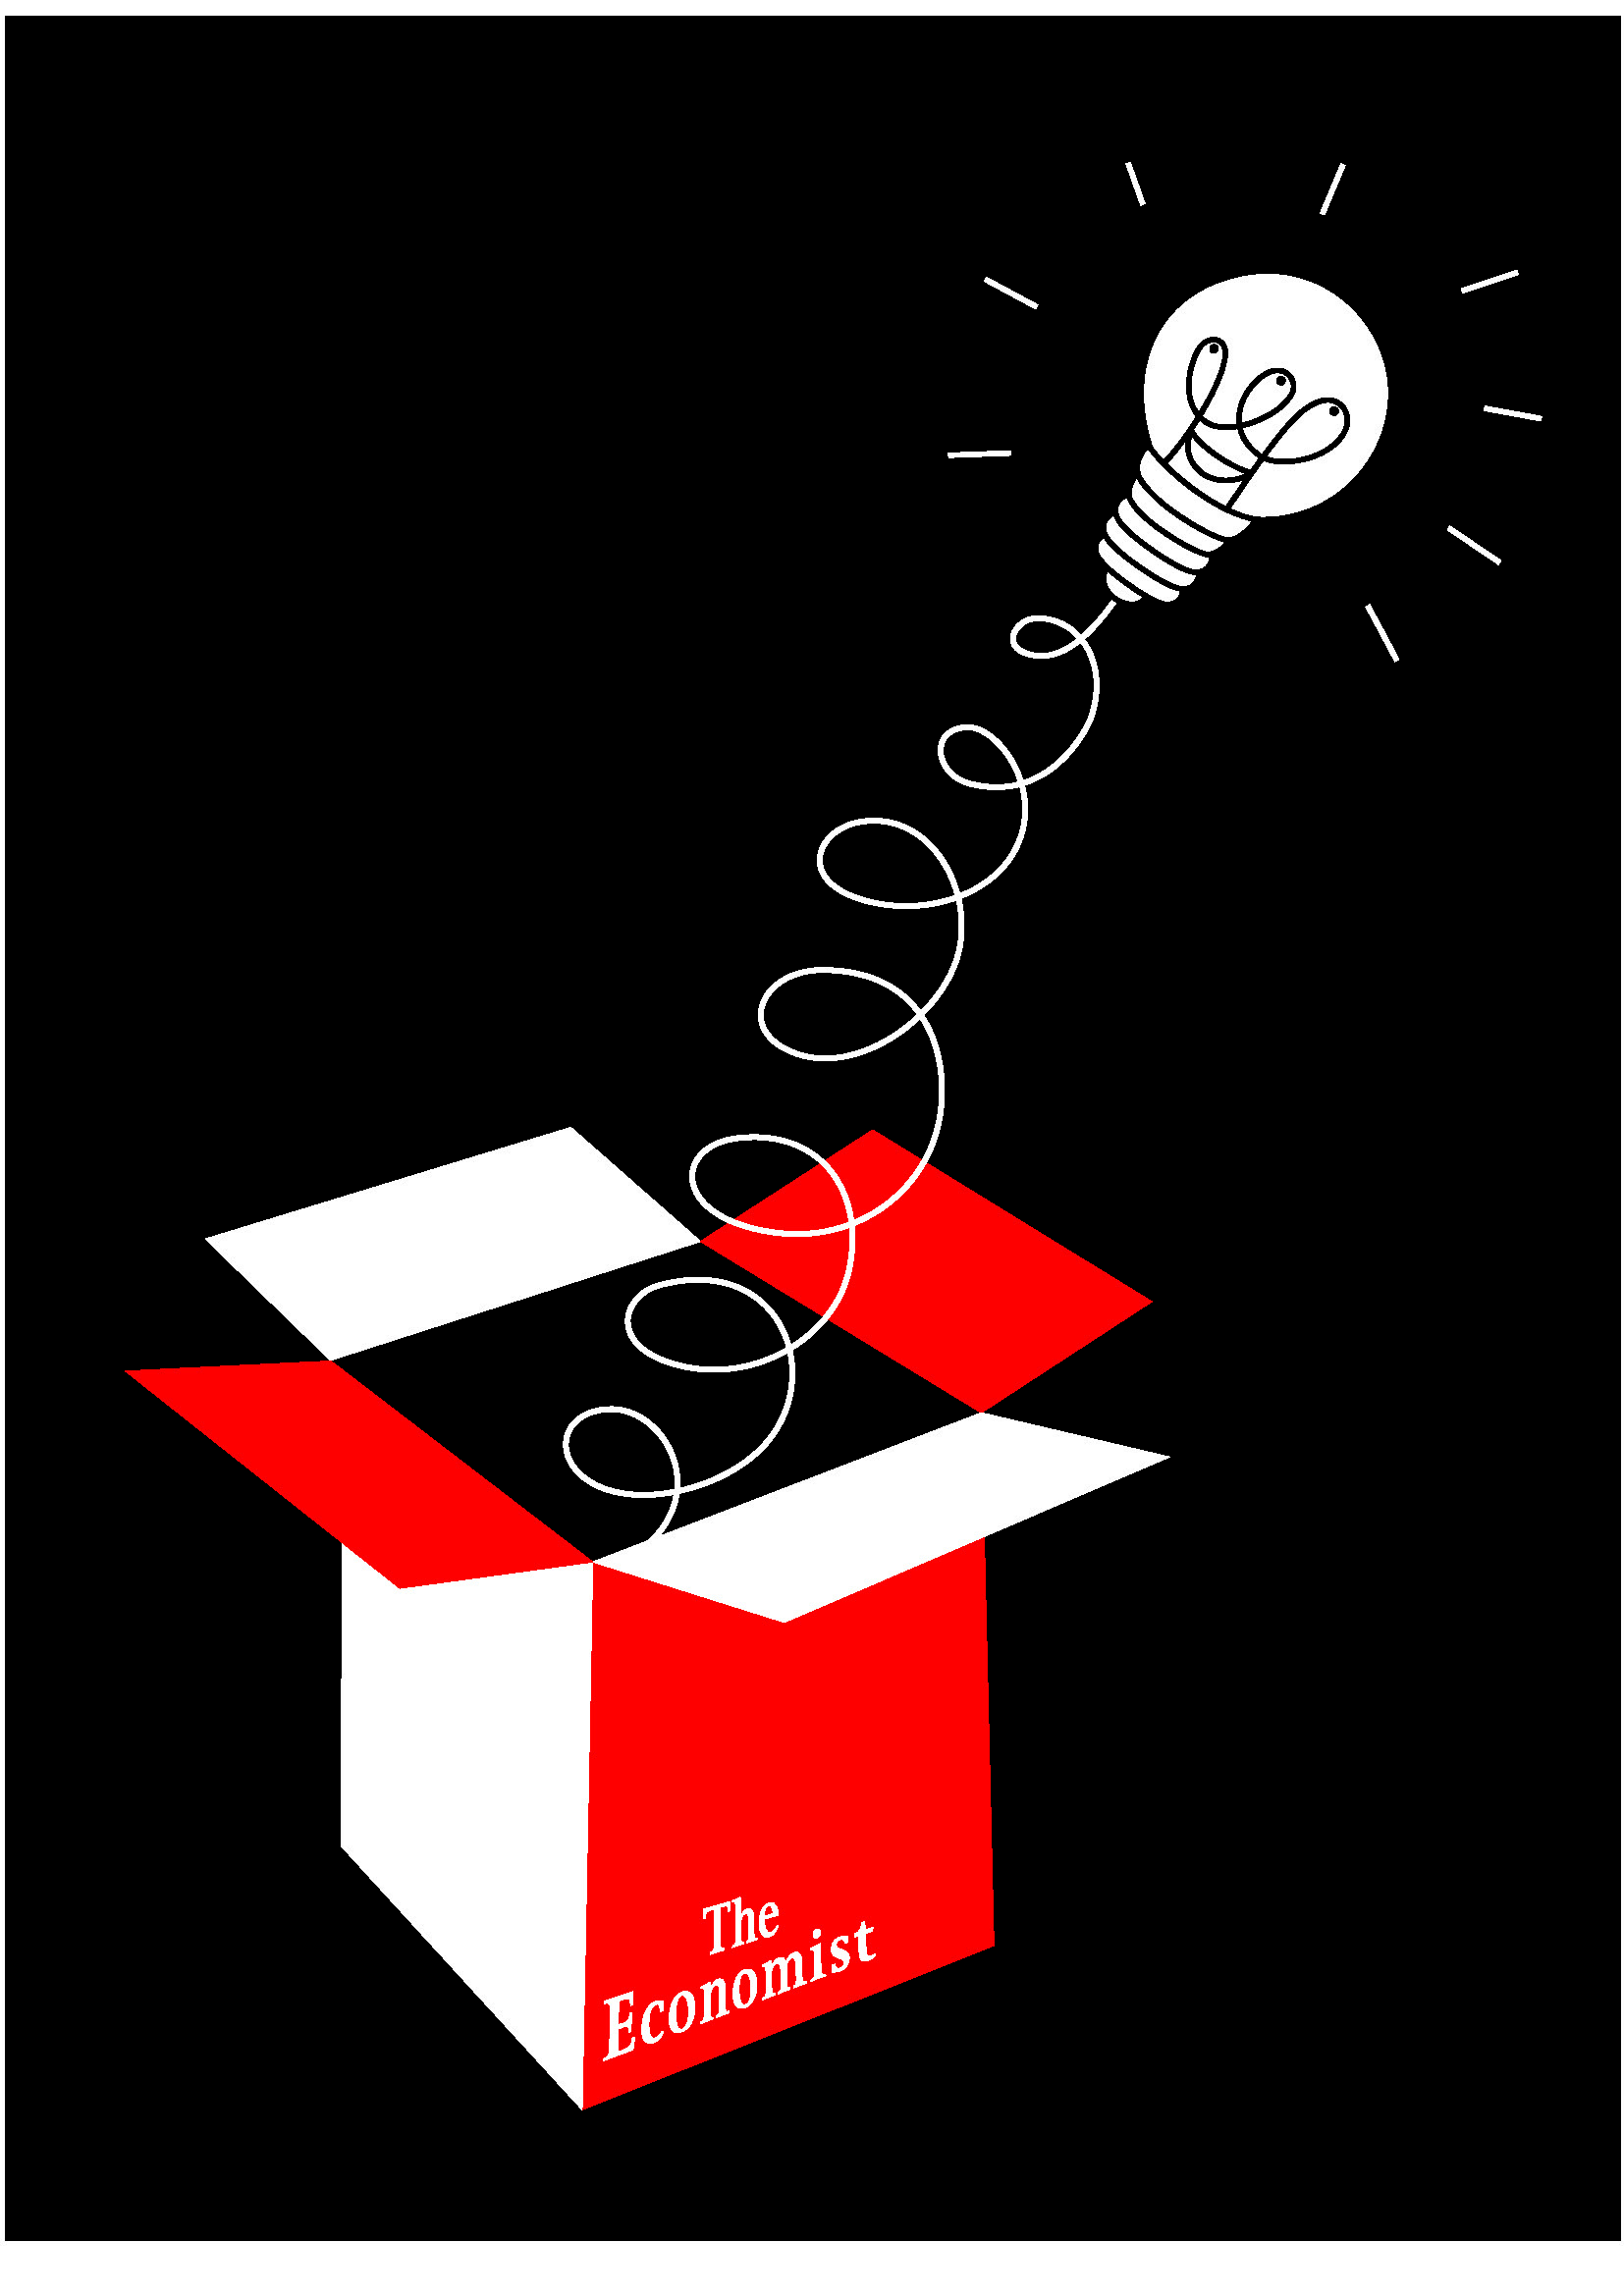 2. 'Jack-In-The-Box' The Economist, DHM.jpg